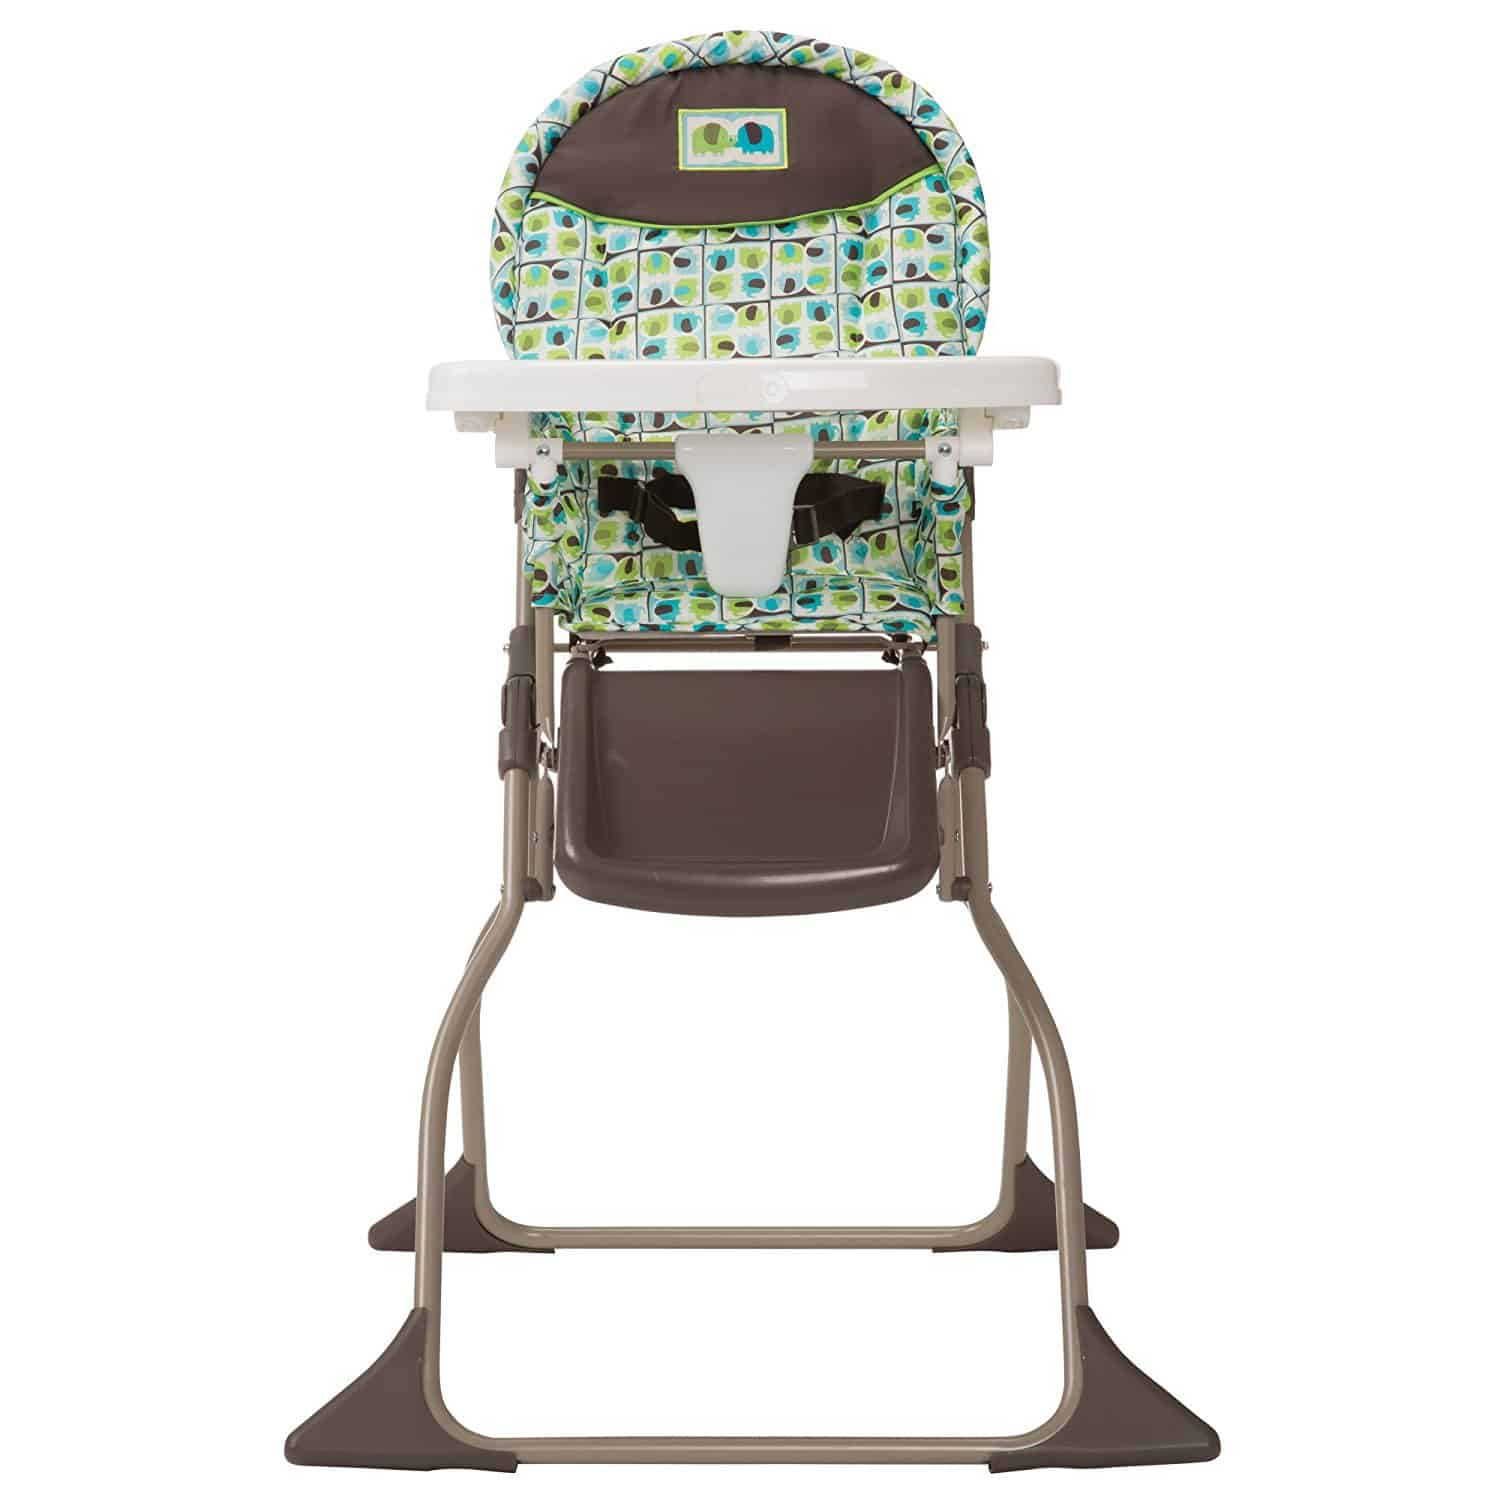 052af6e0e6f2 Best High Chair for Grandma s House